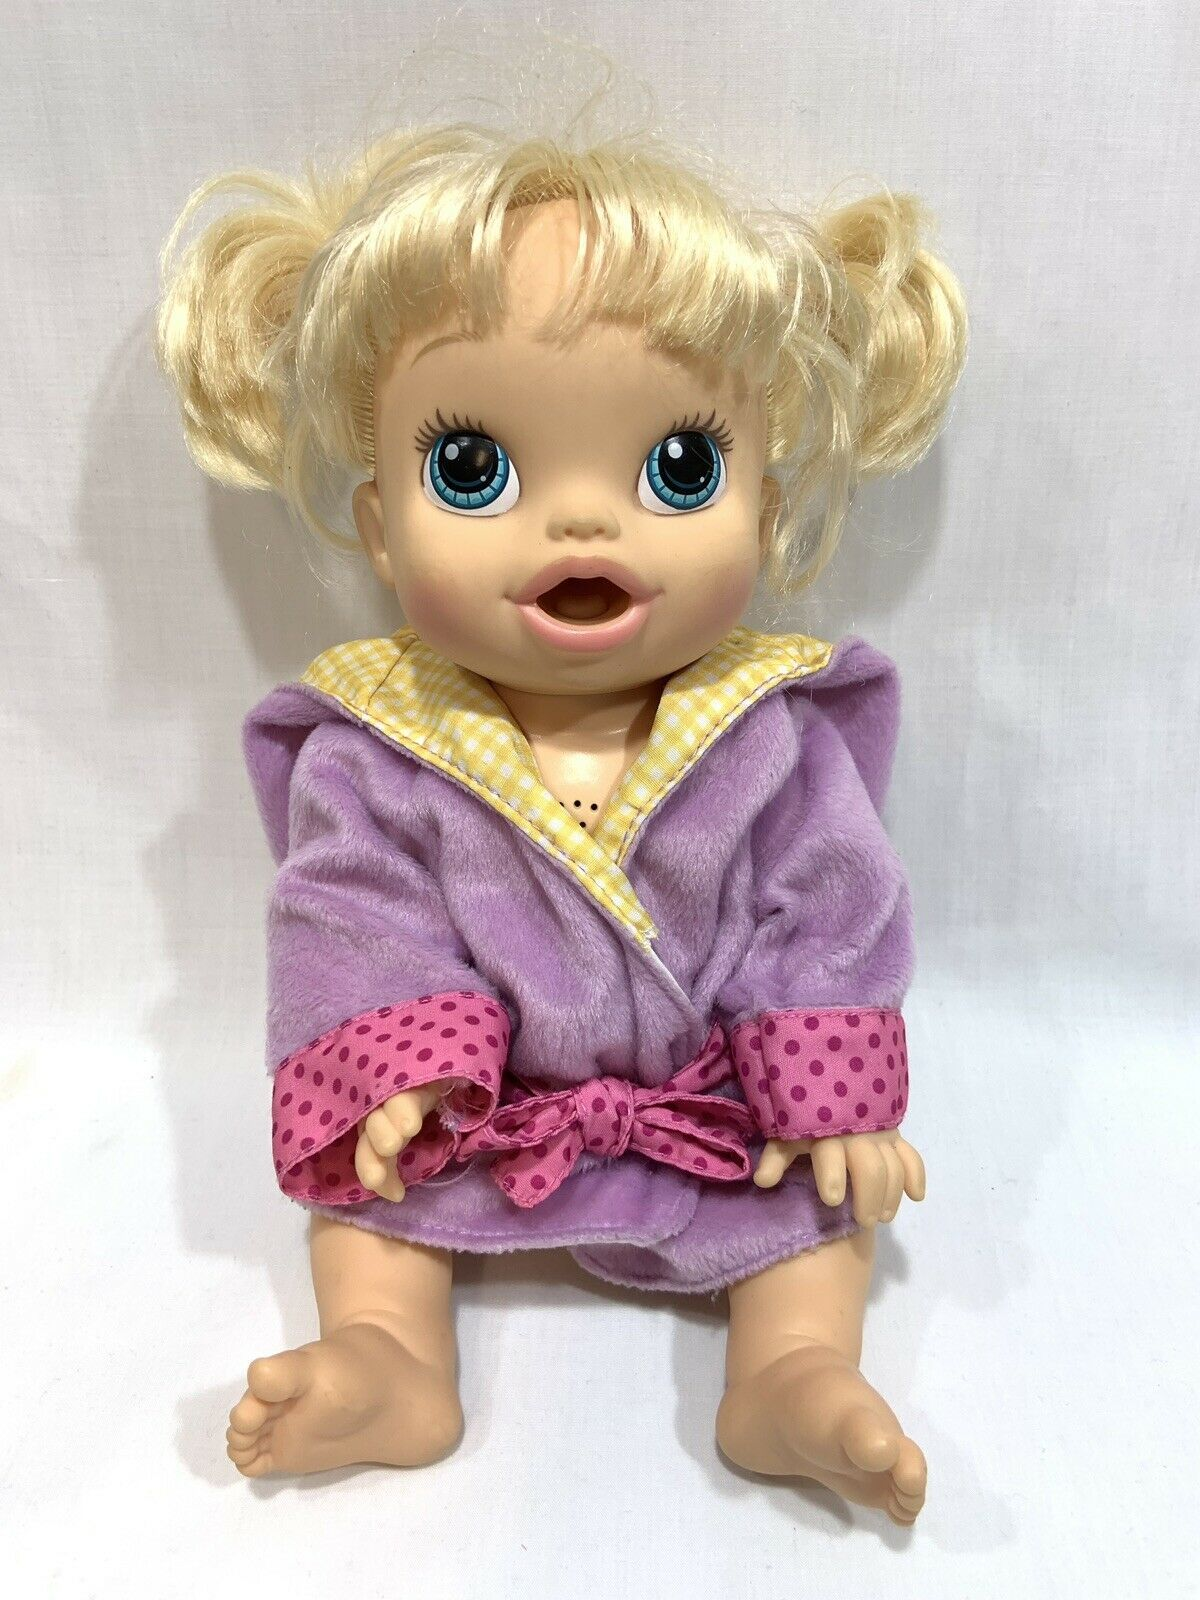 Baby Alive Hasbro 2013 Blonde Doll Interactive Talking Bilingual English Spanish